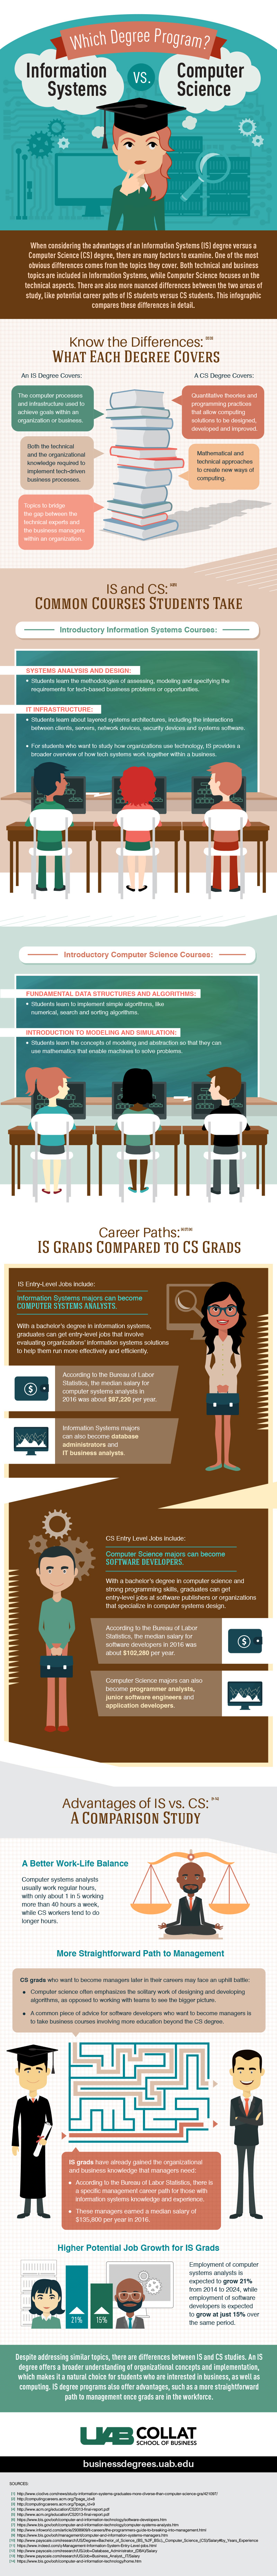 An infographic about choosing an information systems or computer science degree by UAB Collat School of Business.